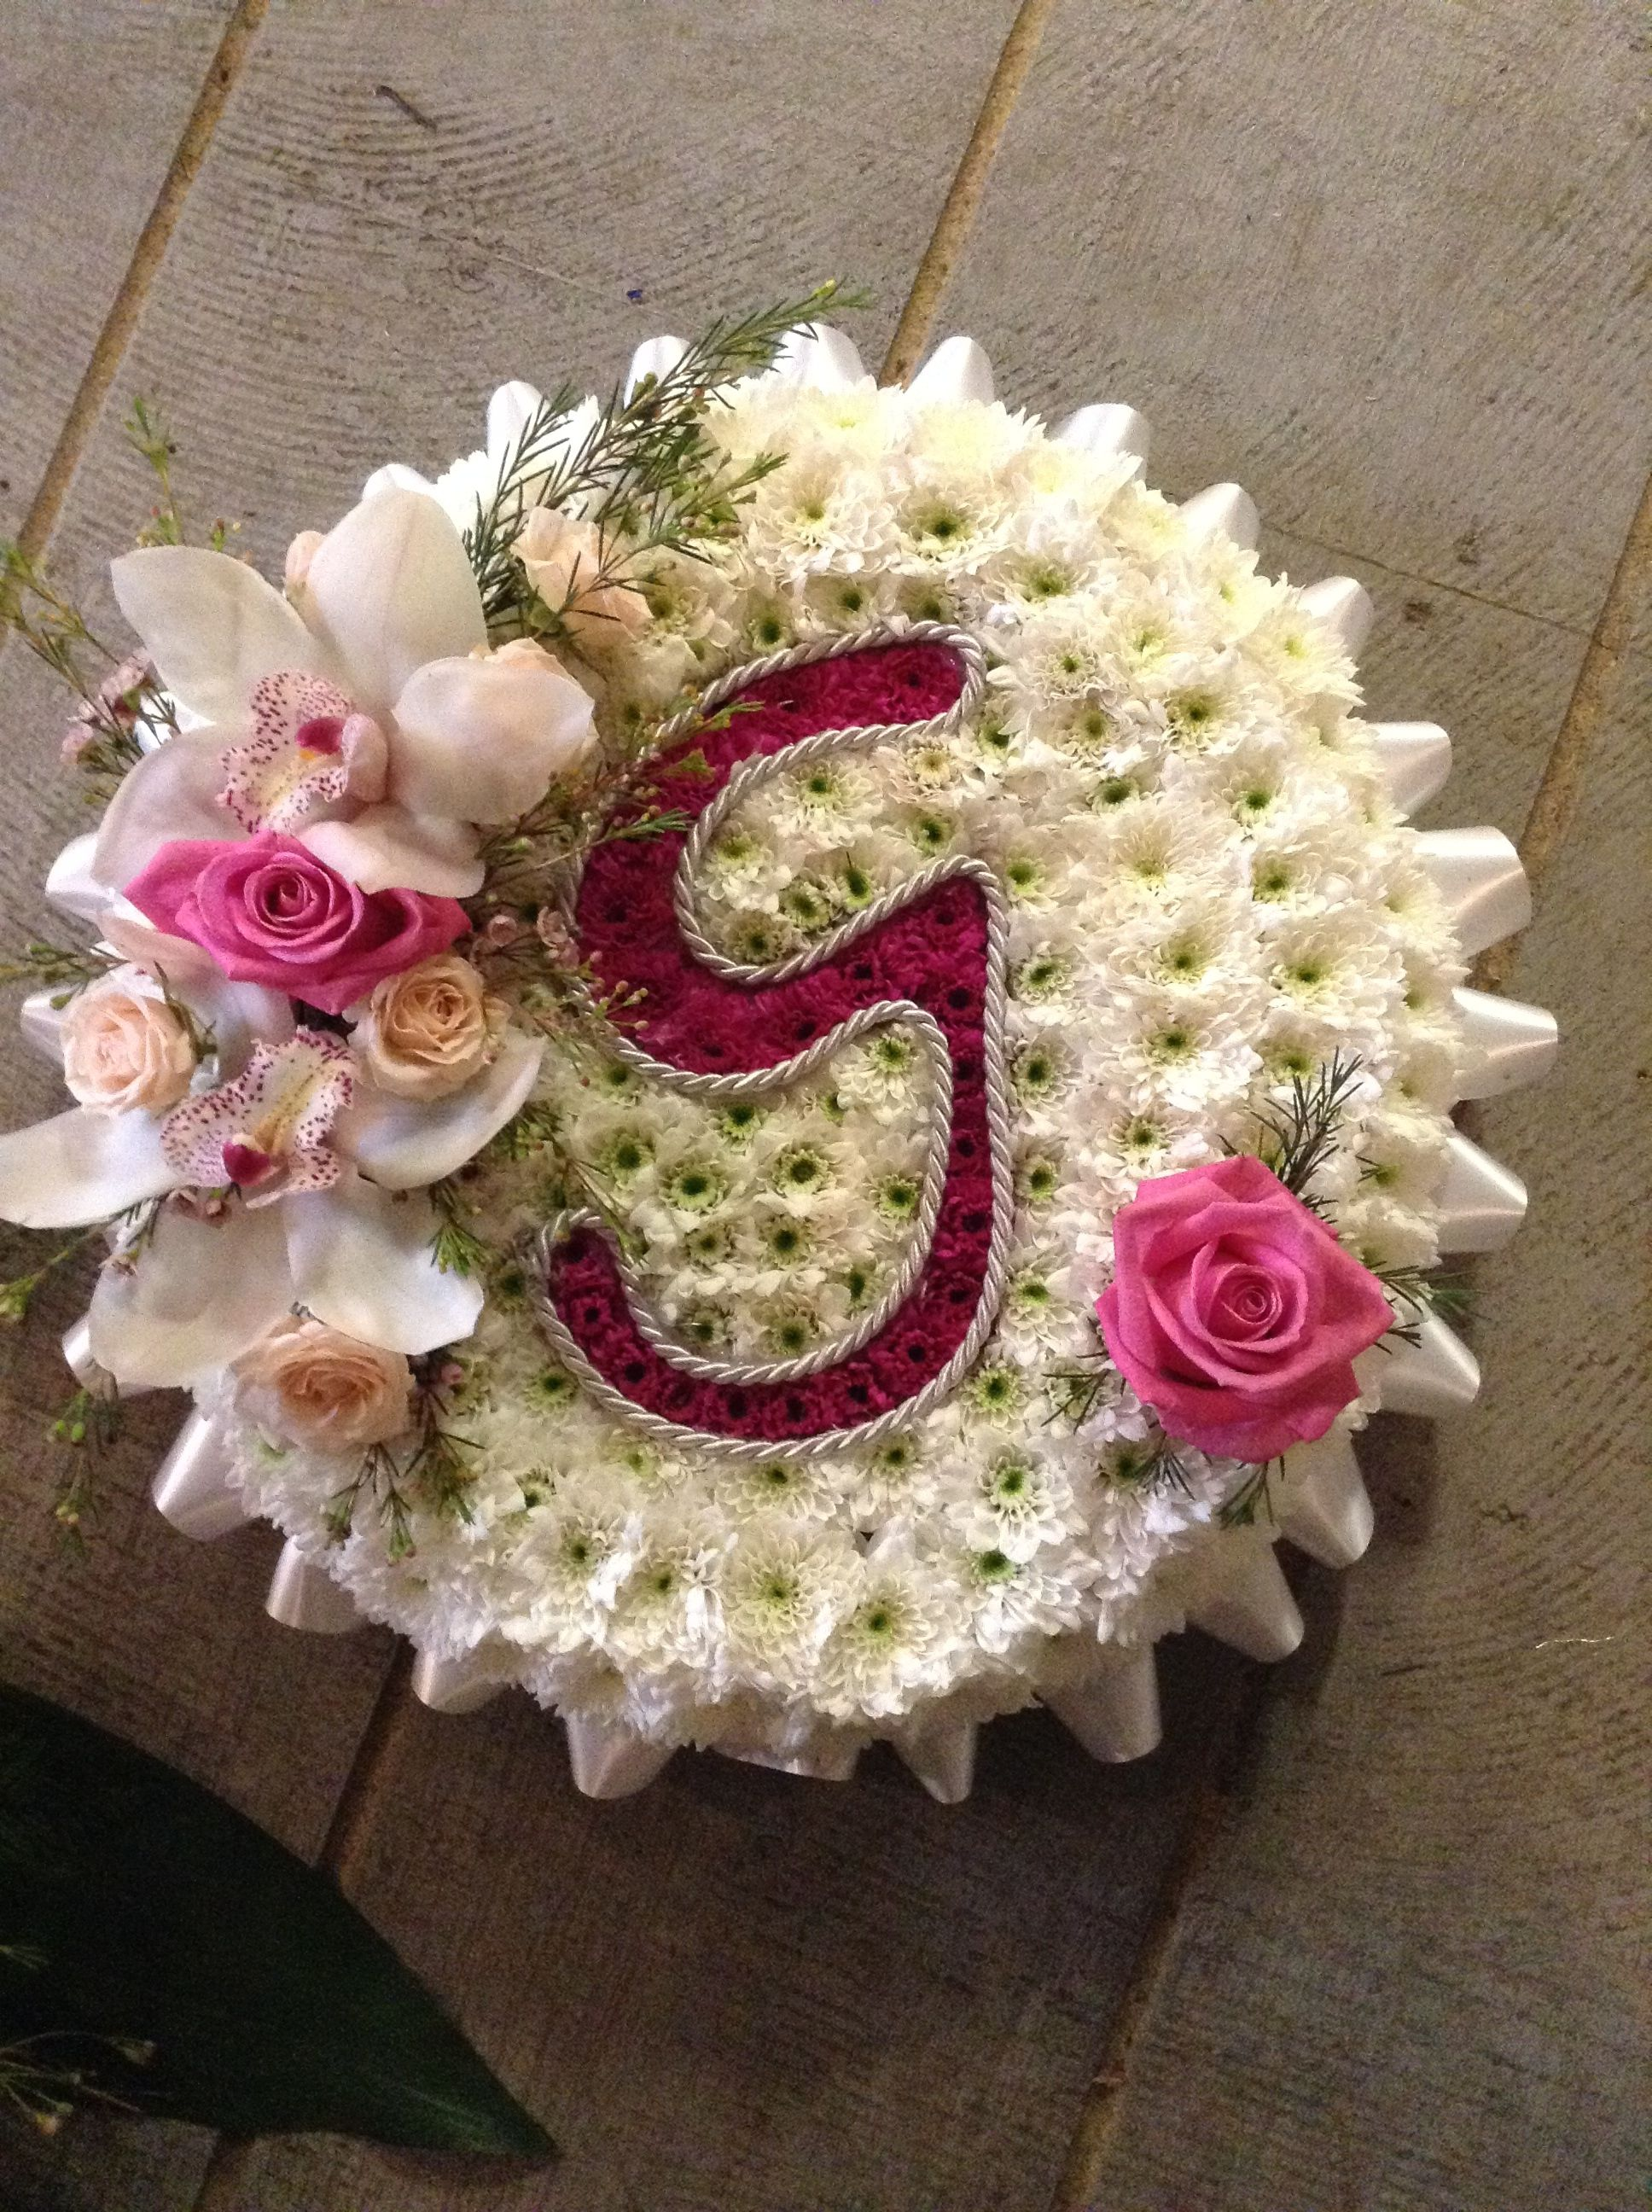 Funeral flowers beautiful personal posy for a funeral pink and beautiful funeral flower posies made by your local professional florist flower shop manningtree colchester please call 01206 394496 dhlflorist Image collections